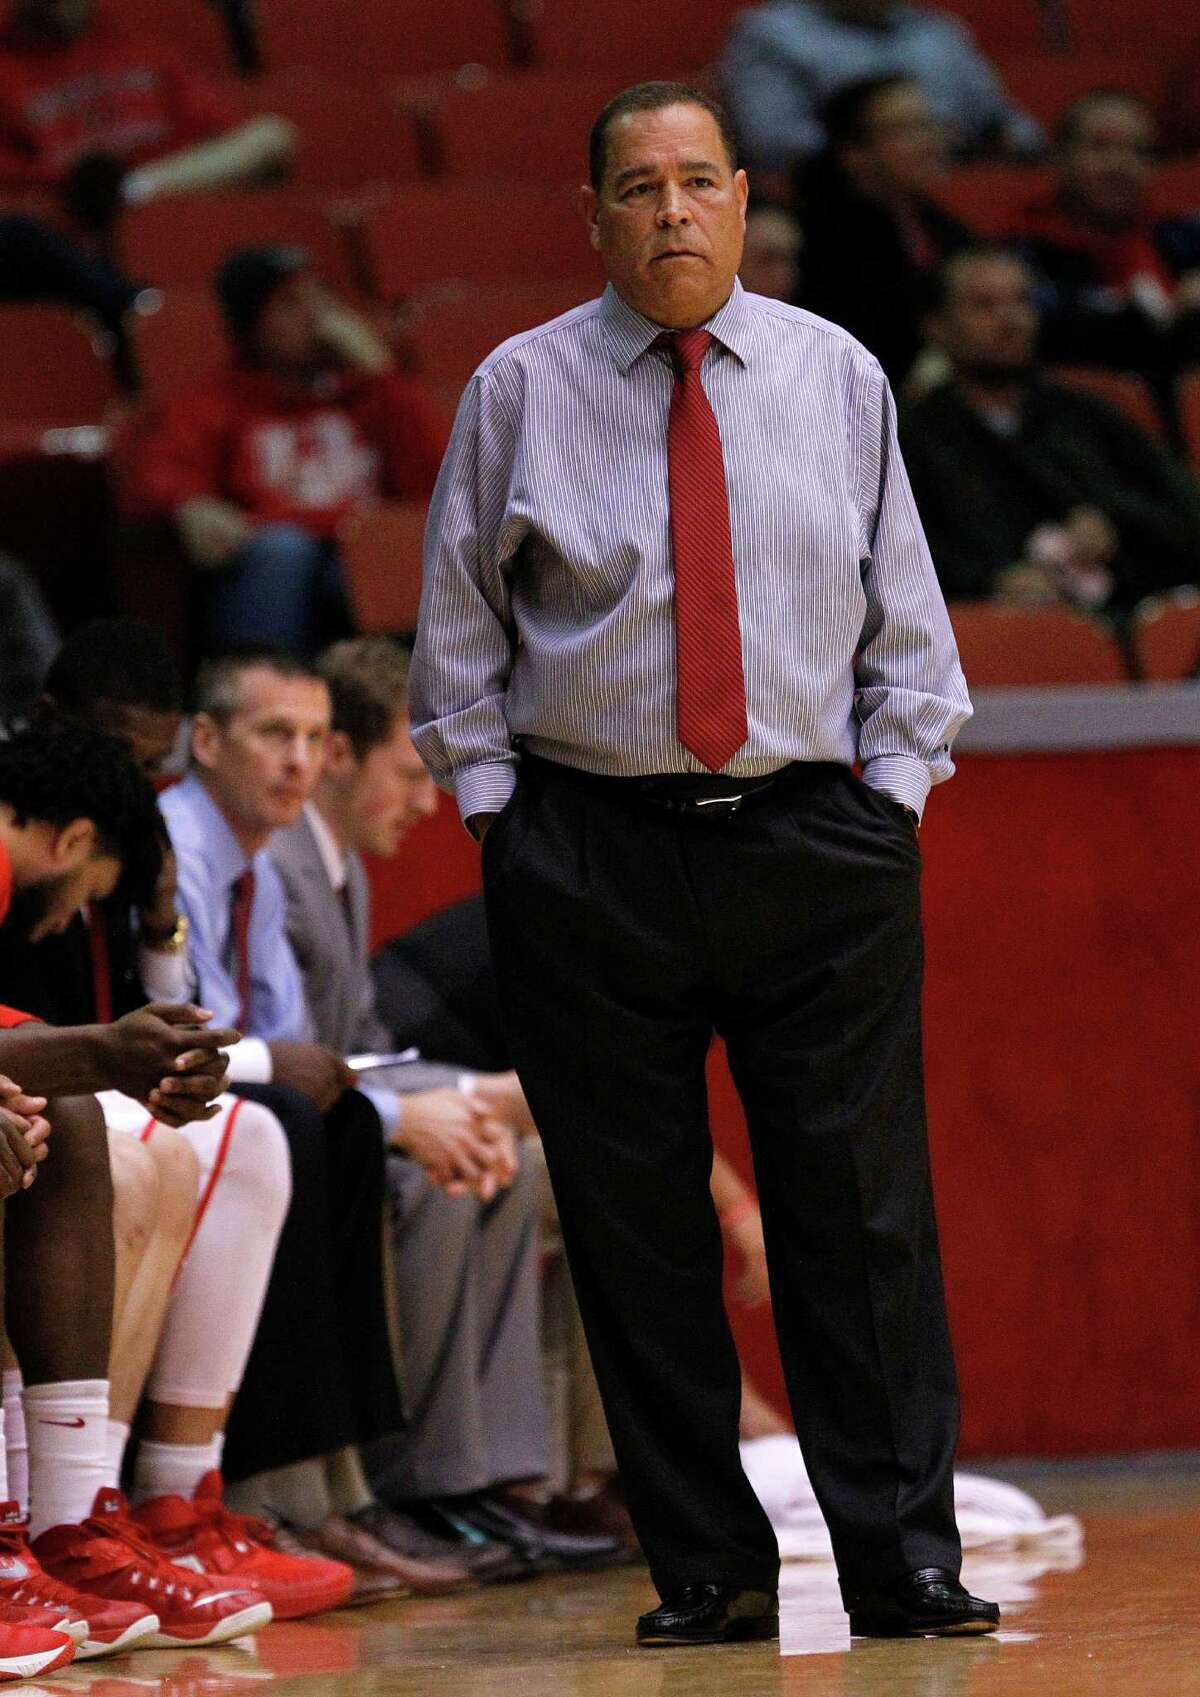 UH coach Kelvin Sampson's new dealincludes a two-year extension and $300,000 salary increase, pushing Sampson's annual compensation package to $1.4 million.